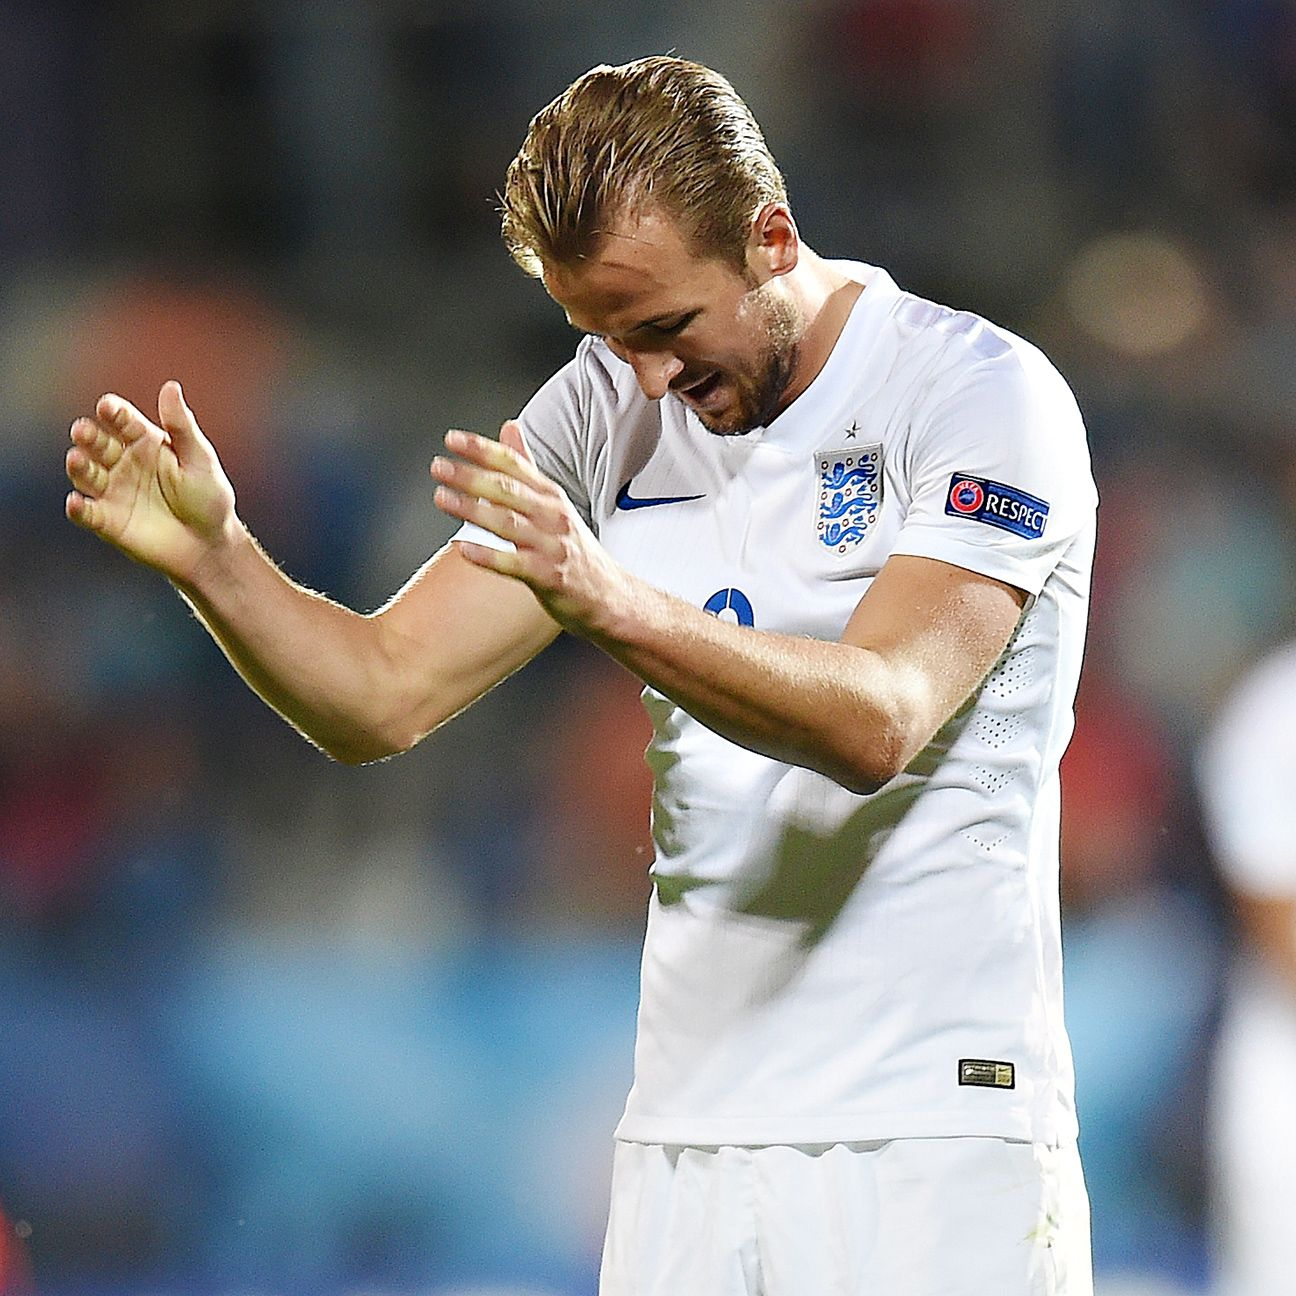 After a bright opening, Harry Kane and the England attack mustered very little against Portugal.